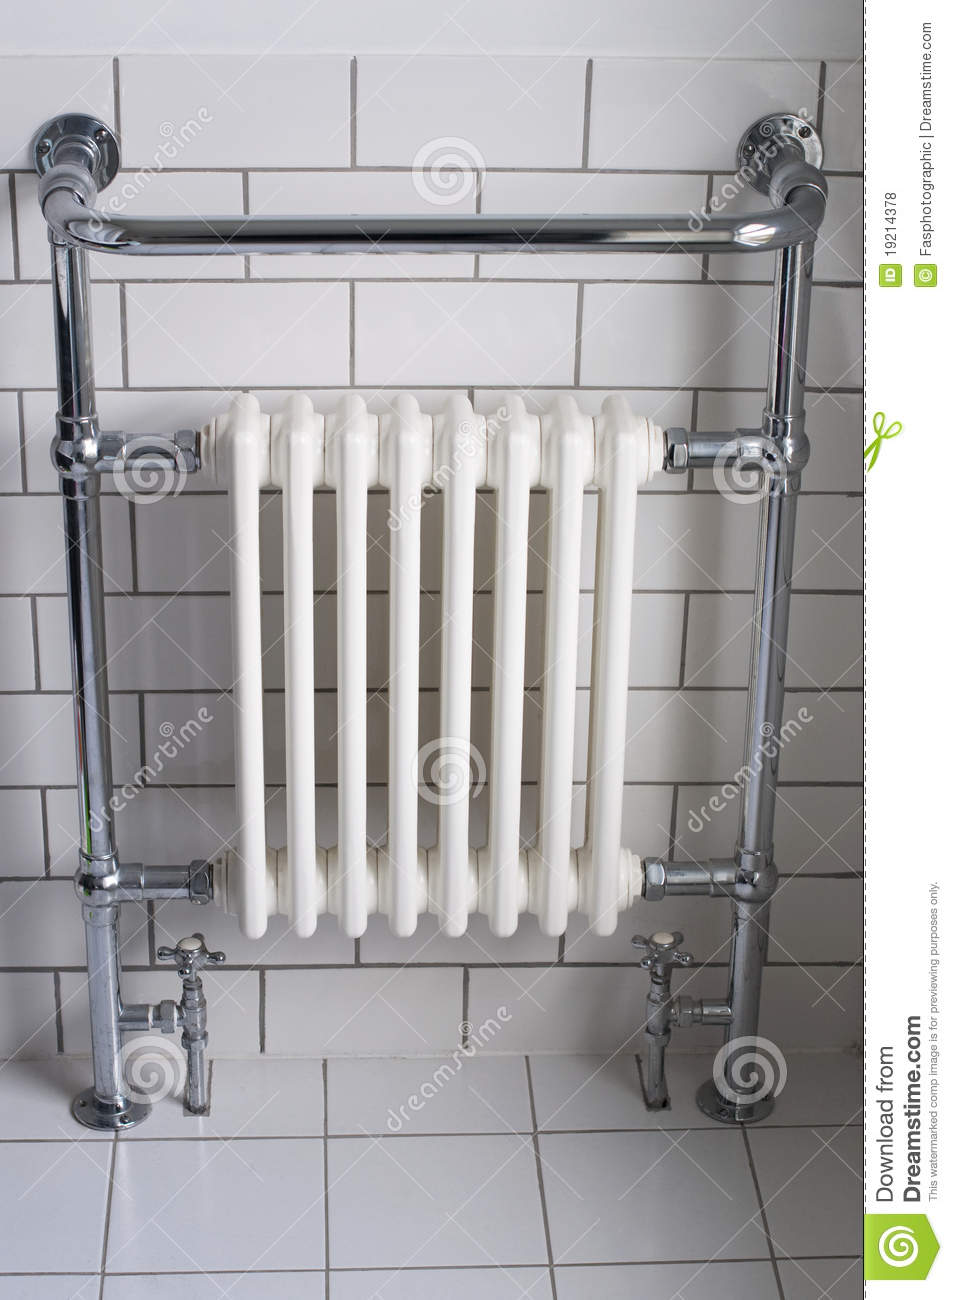 A Chrome Bathroom Radiator Stock Photo Image Of Radiator